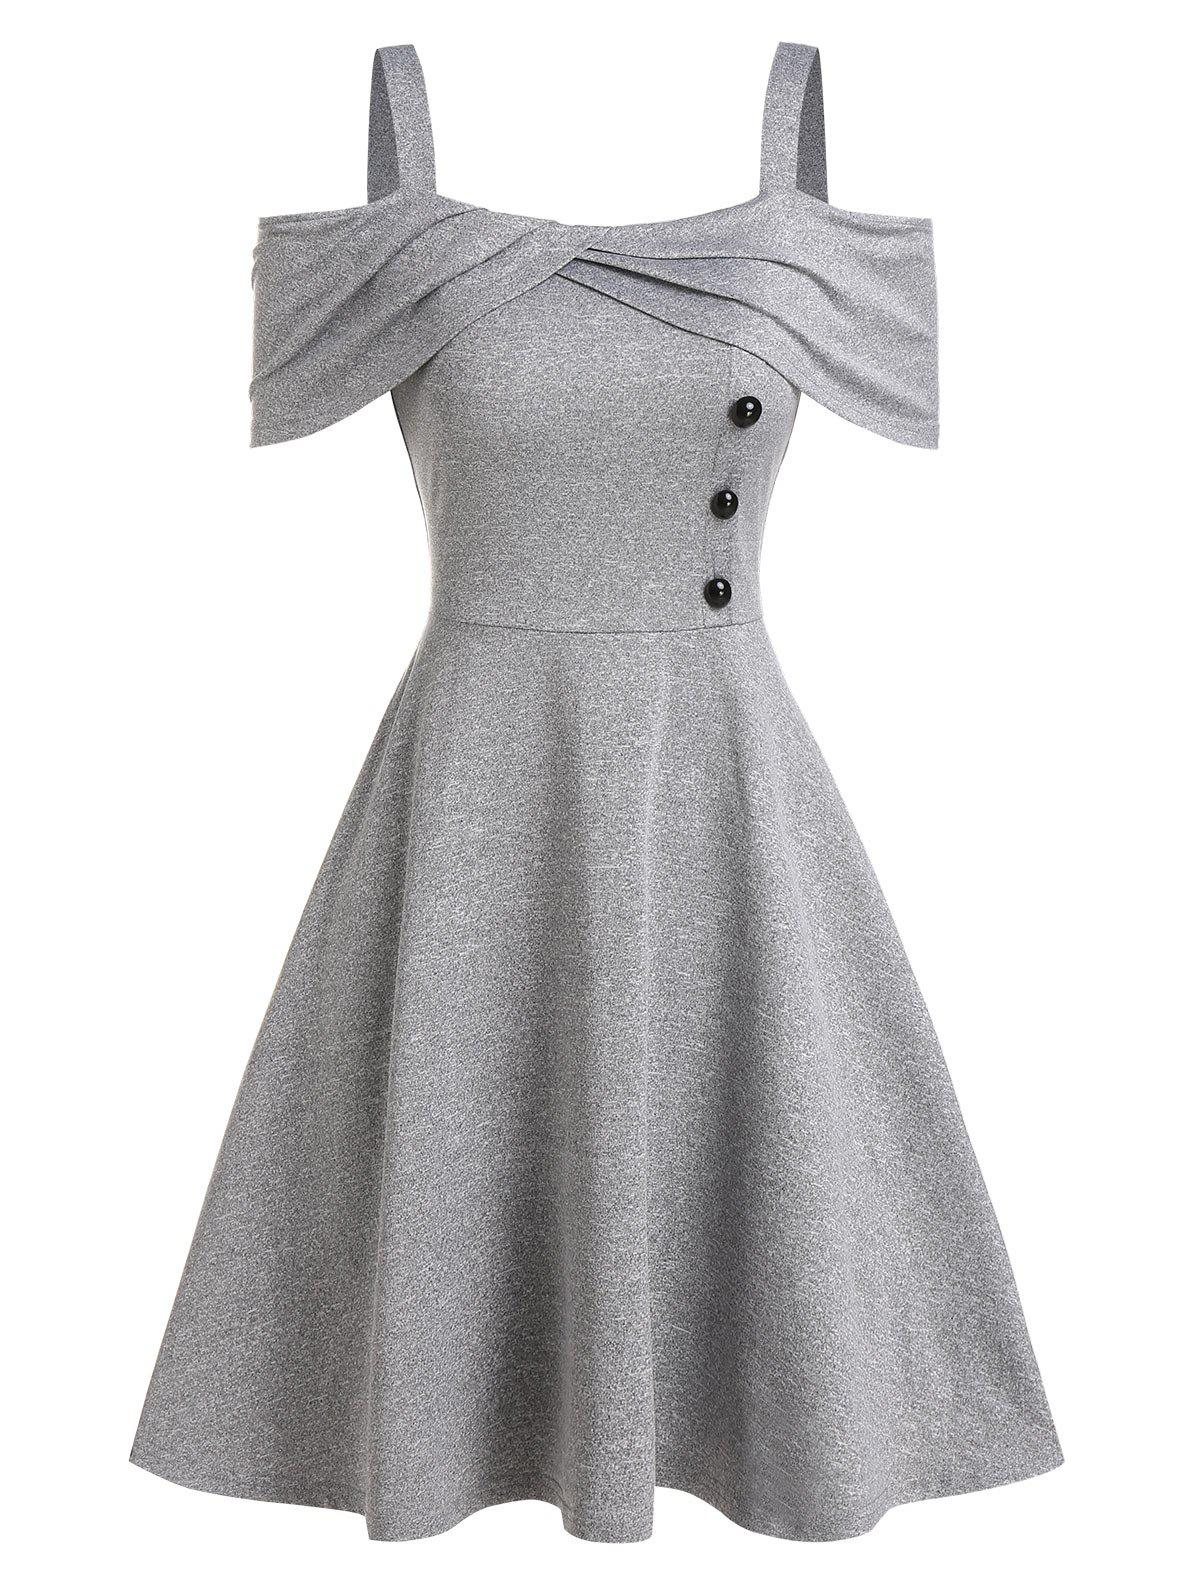 Cold Shoulder Mock Button Marled Dress - LIGHT GRAY L